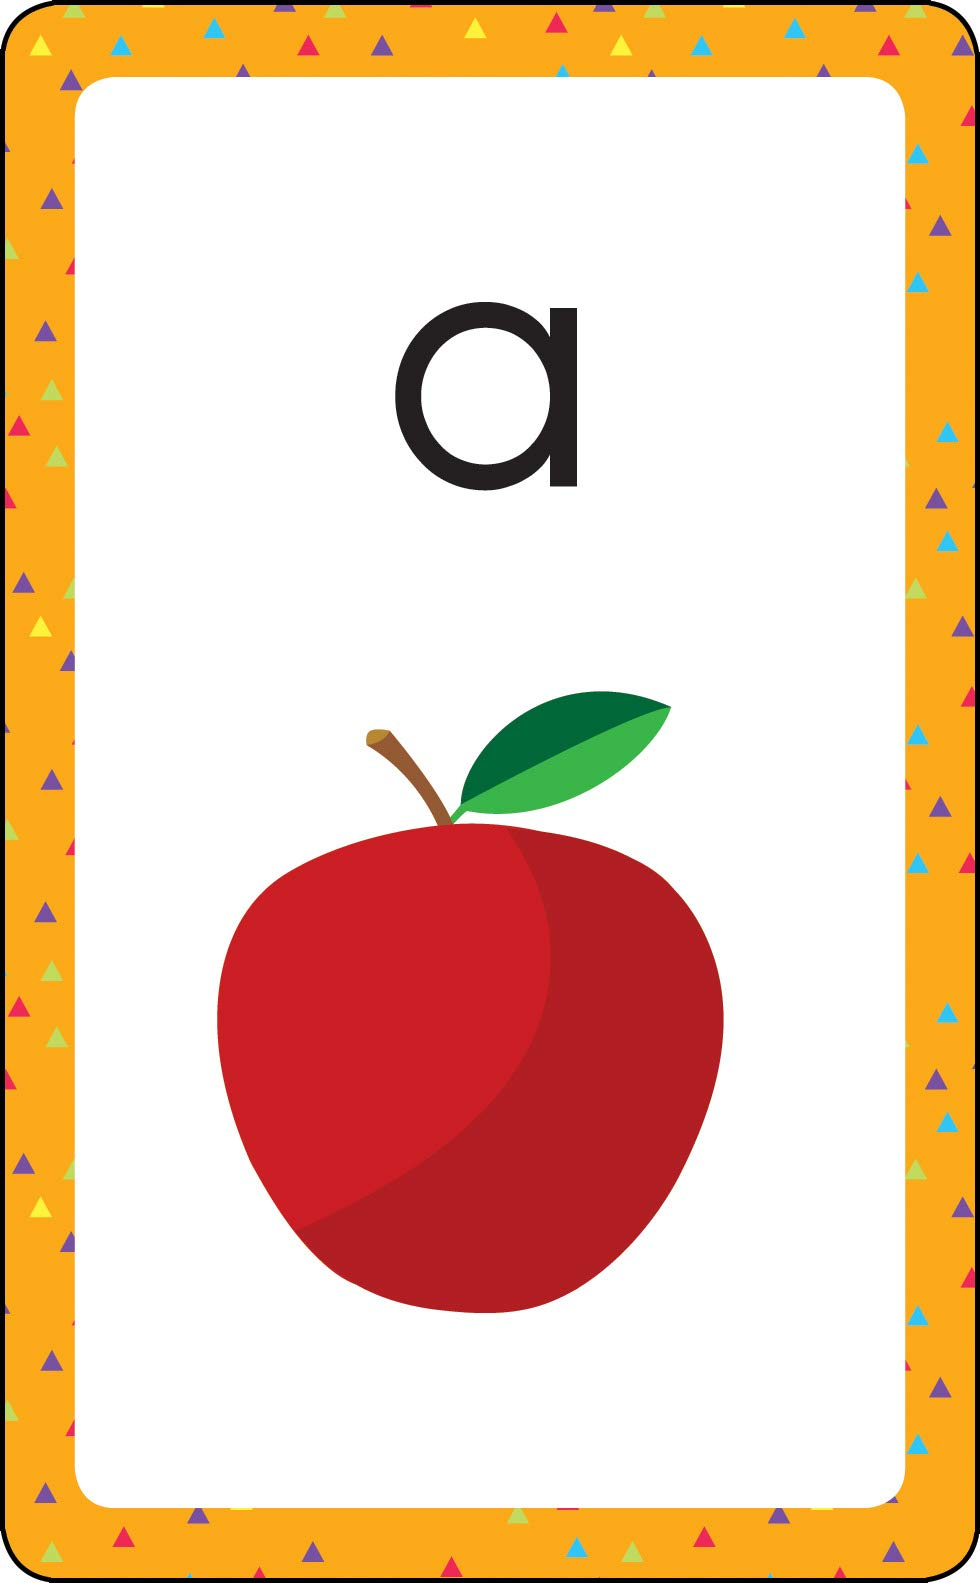 Amazon.com: Carson Dellosa - Alphabet Flash Cards - 54 Cards ...